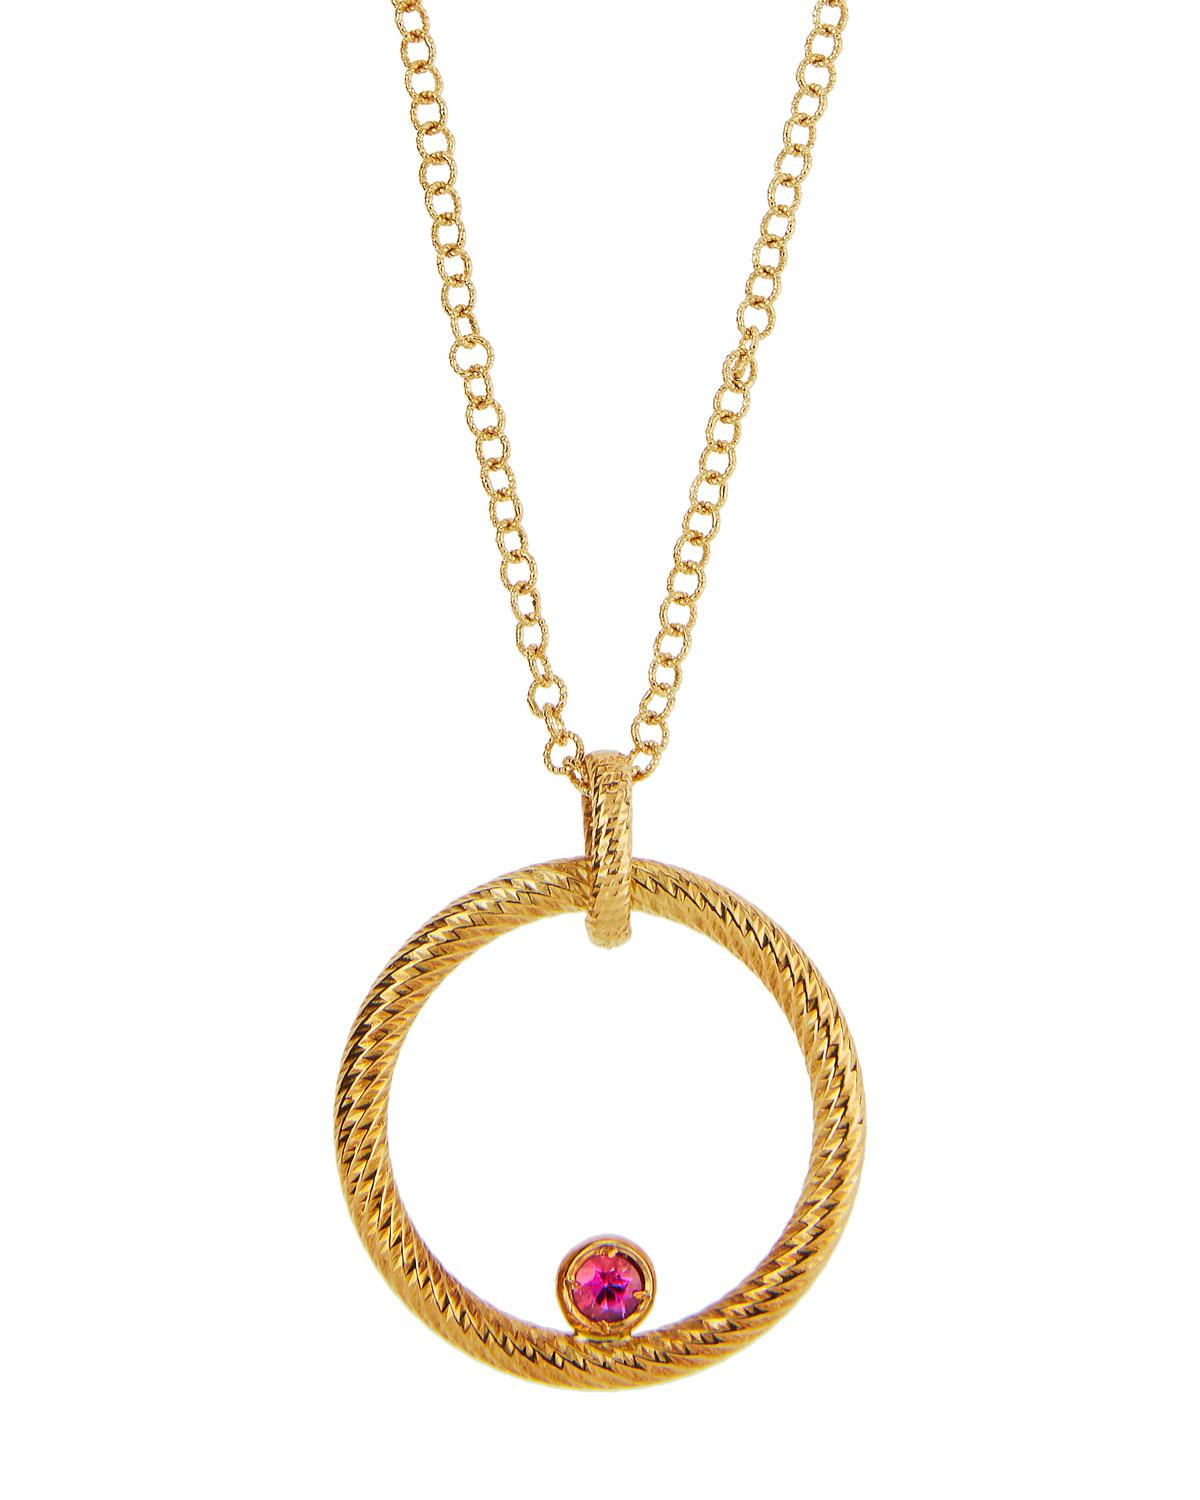 Roberto Coin Red 18k Round Synthetic Ruby Pendant Necklace Pertaining To Most Recently Released July Droplet Pendant, Synthetic Ruby Necklaces (View 18 of 25)